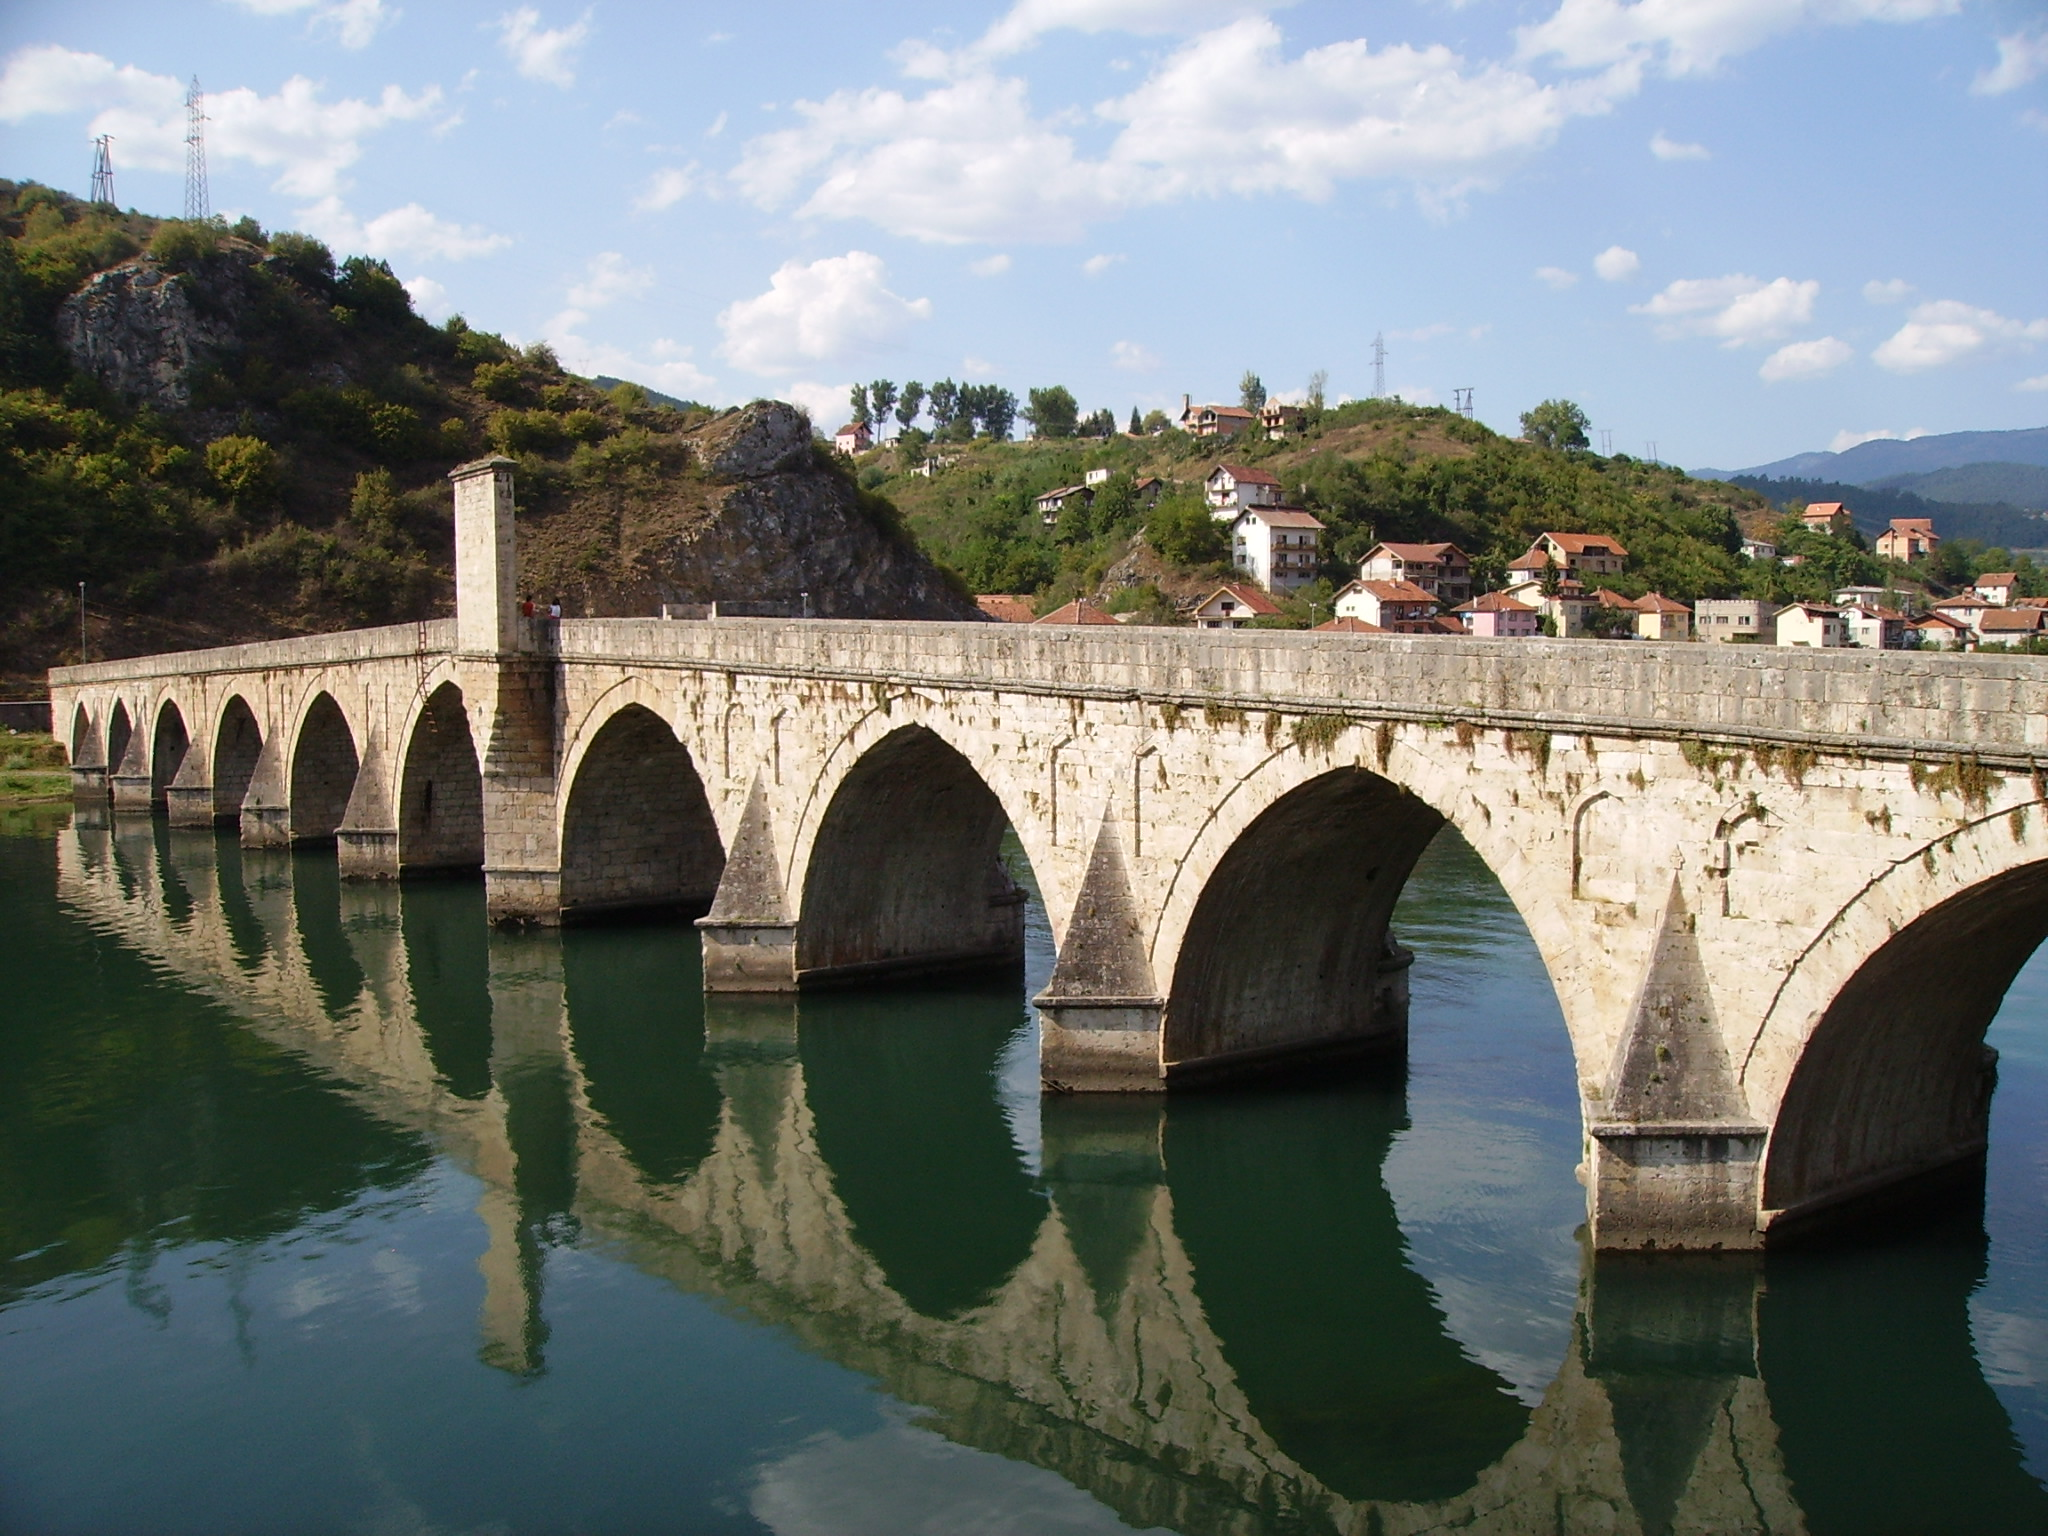 Bridge over Drina River in Višegrad, BiH. (GNU Free Documentation License)